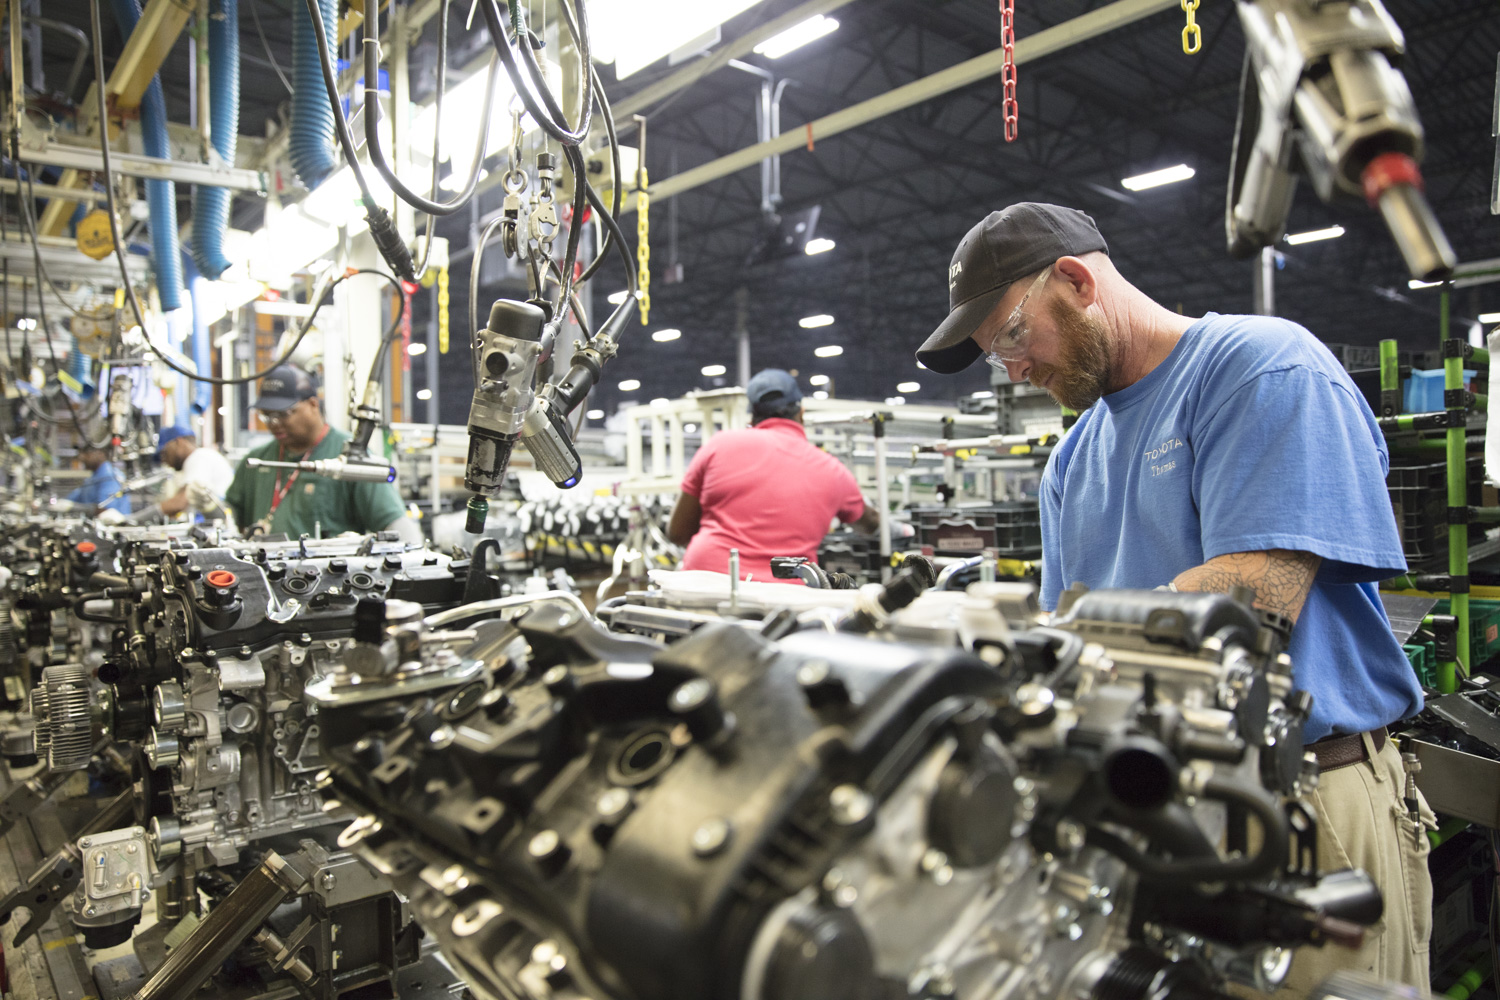 Job Training Programs Fuel Growth Of Alabama Auto Industry